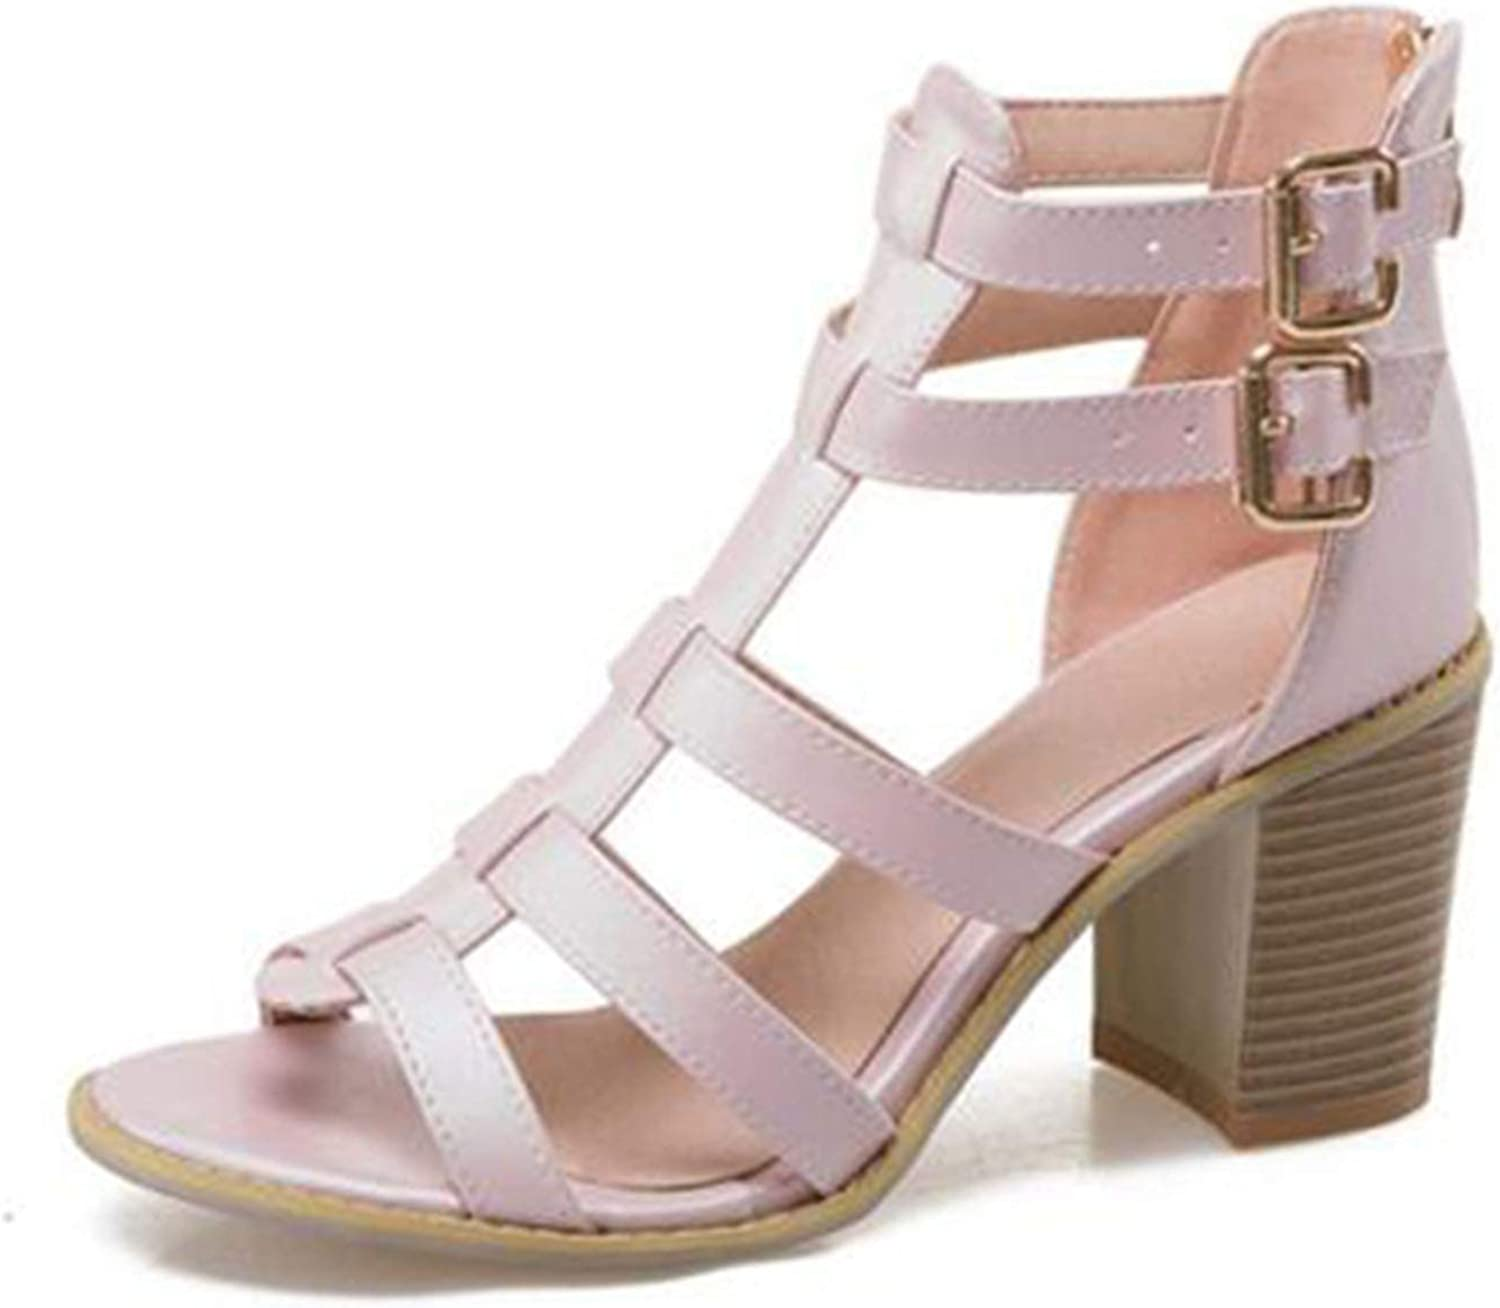 shoes Women Square High Heel Sandals Gladiator Fashion Summer shoes Woman Sexy Party